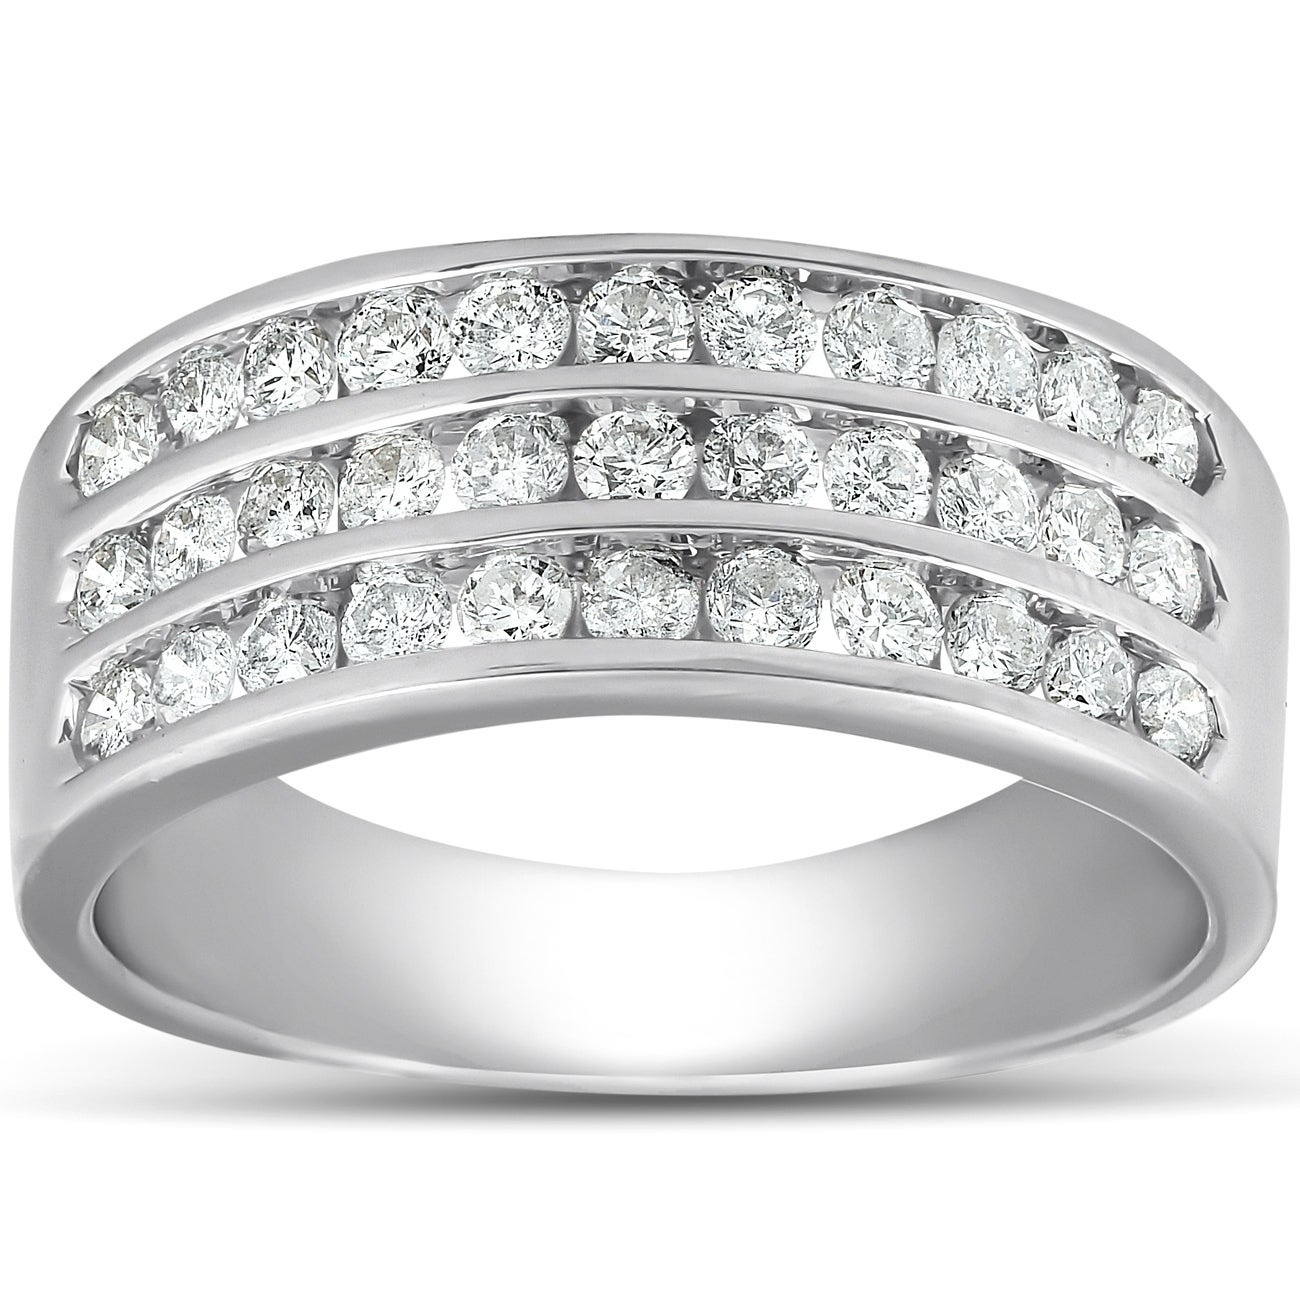 Pompeii3 10K White Gold 1 Ct Tdw Diamond Three Row Channel Set Wedding Ring  Womens Anniversary Band For Most Current Diamond Channel Set Anniversary Bands In White Gold (View 21 of 24)